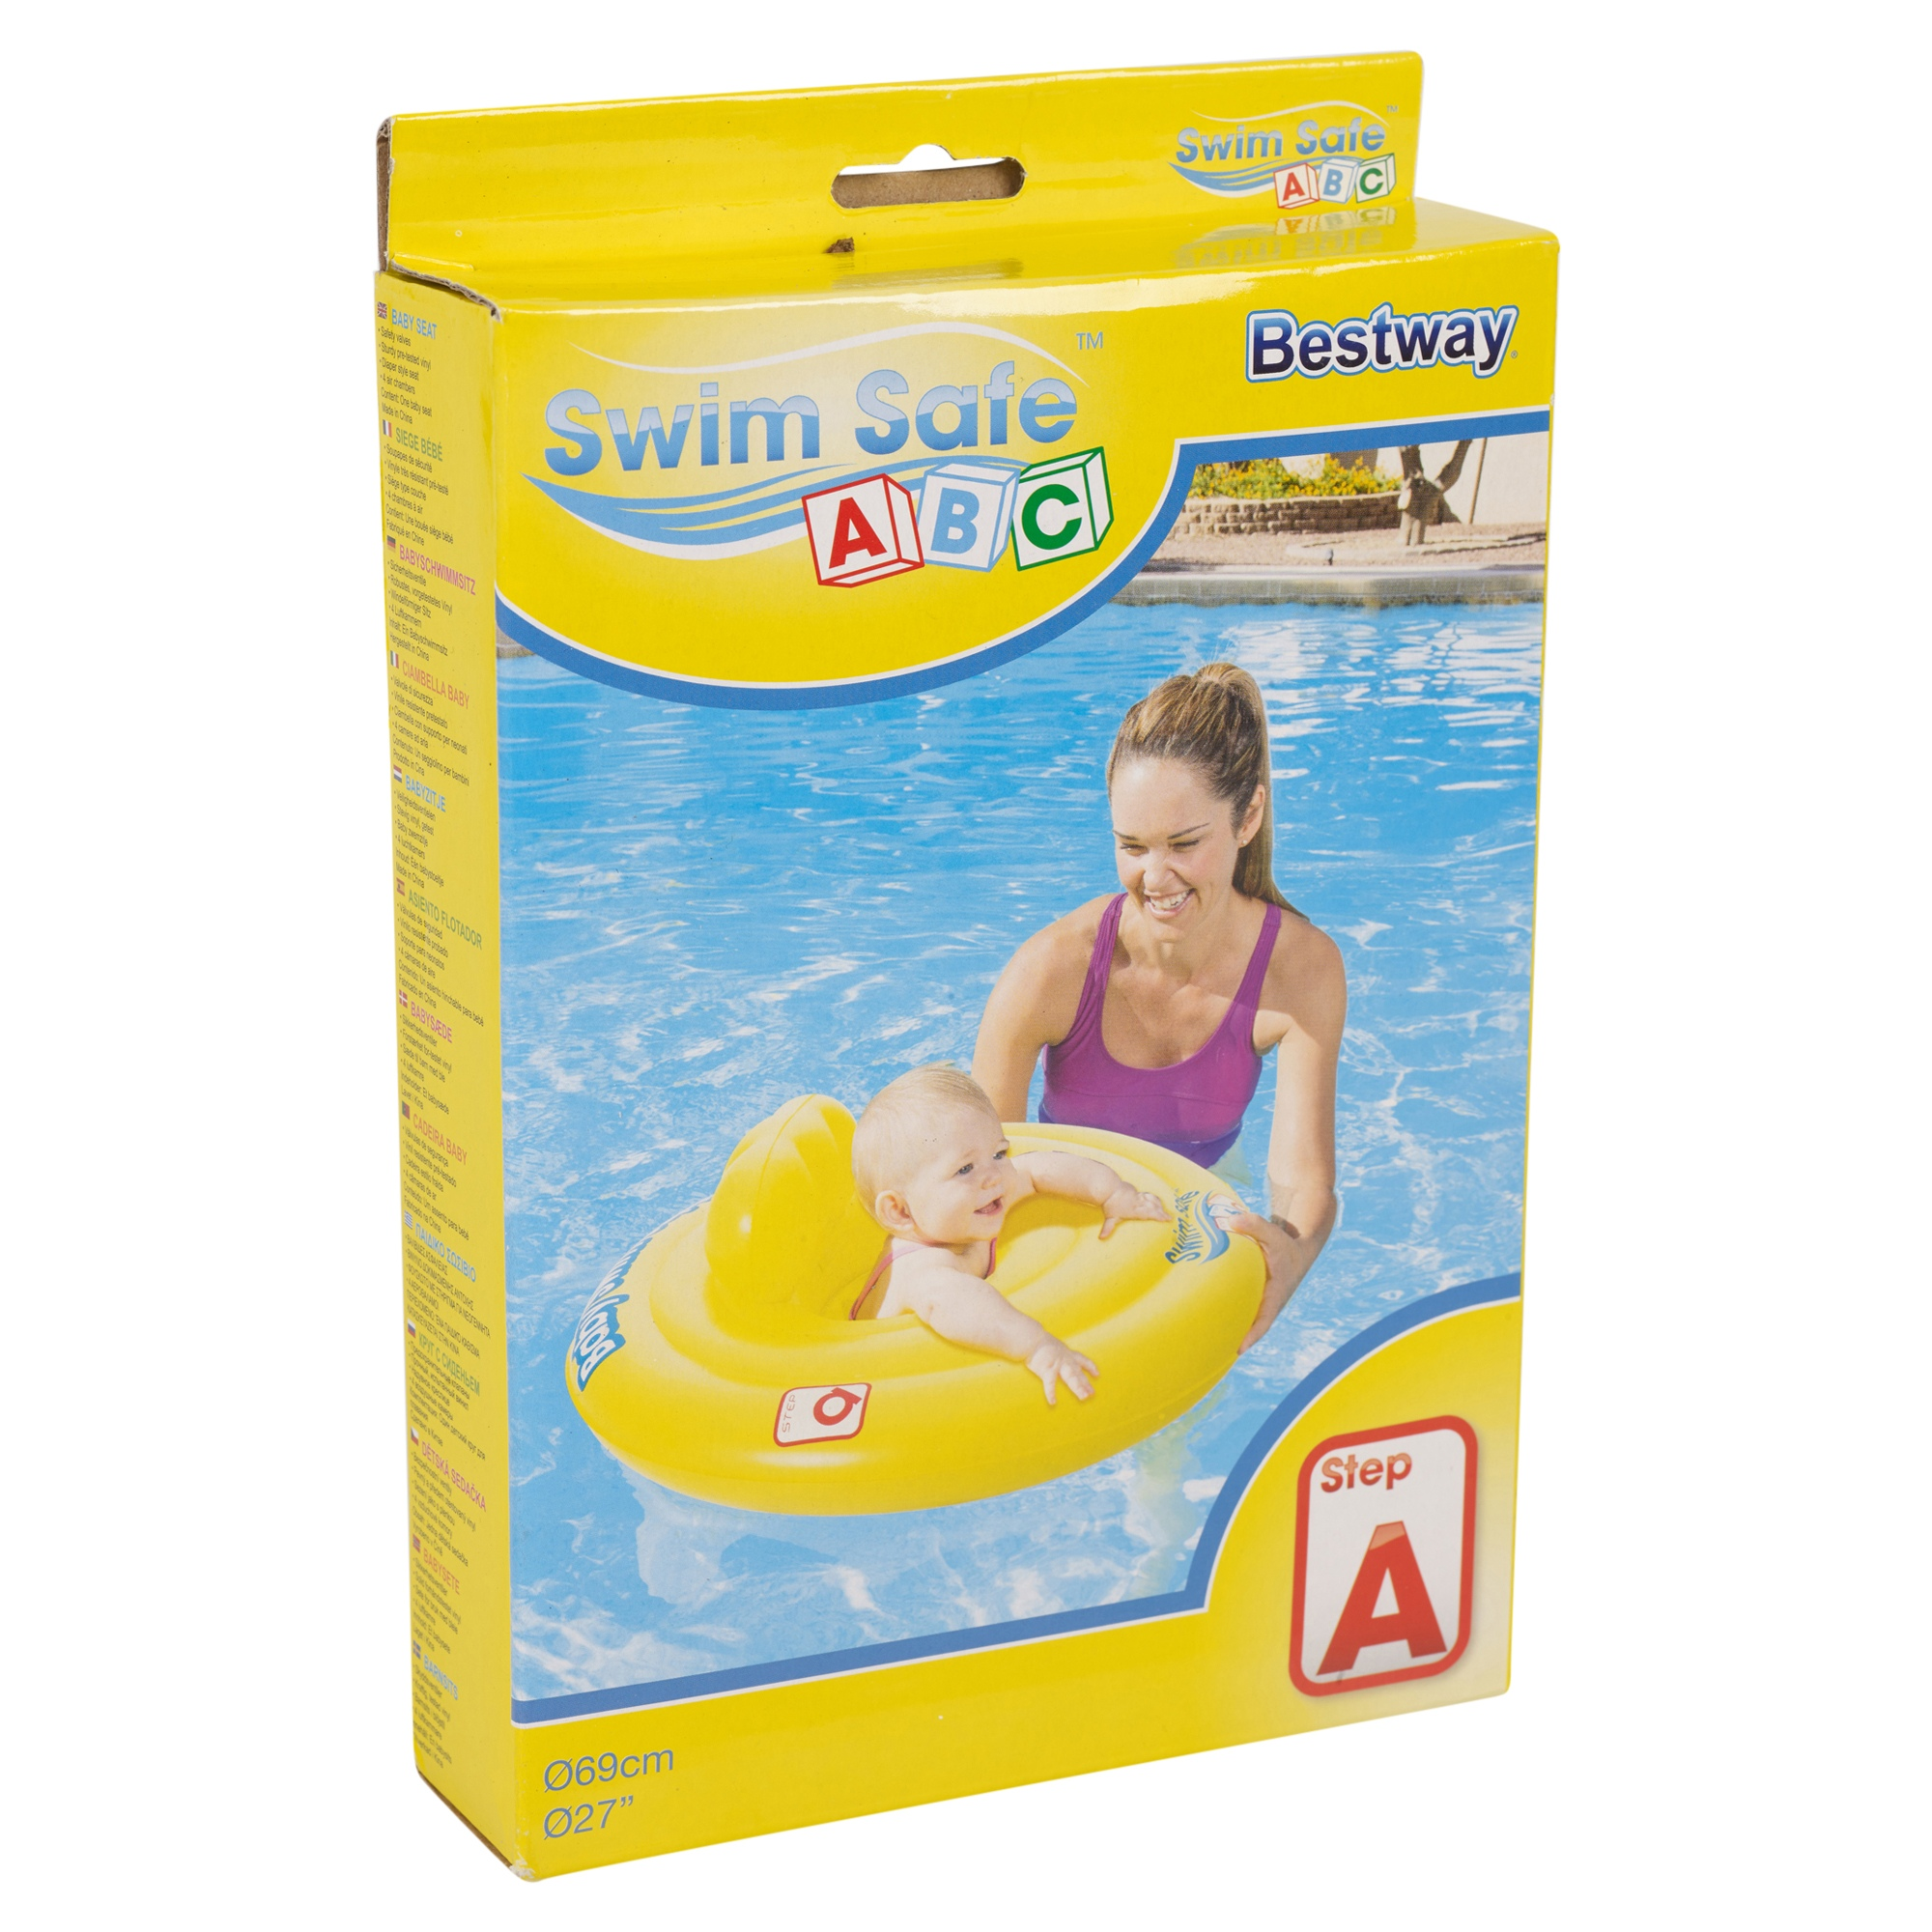 Bestway Safe Step A Baby Support Swiming Pool Seat Ring Trainer ...